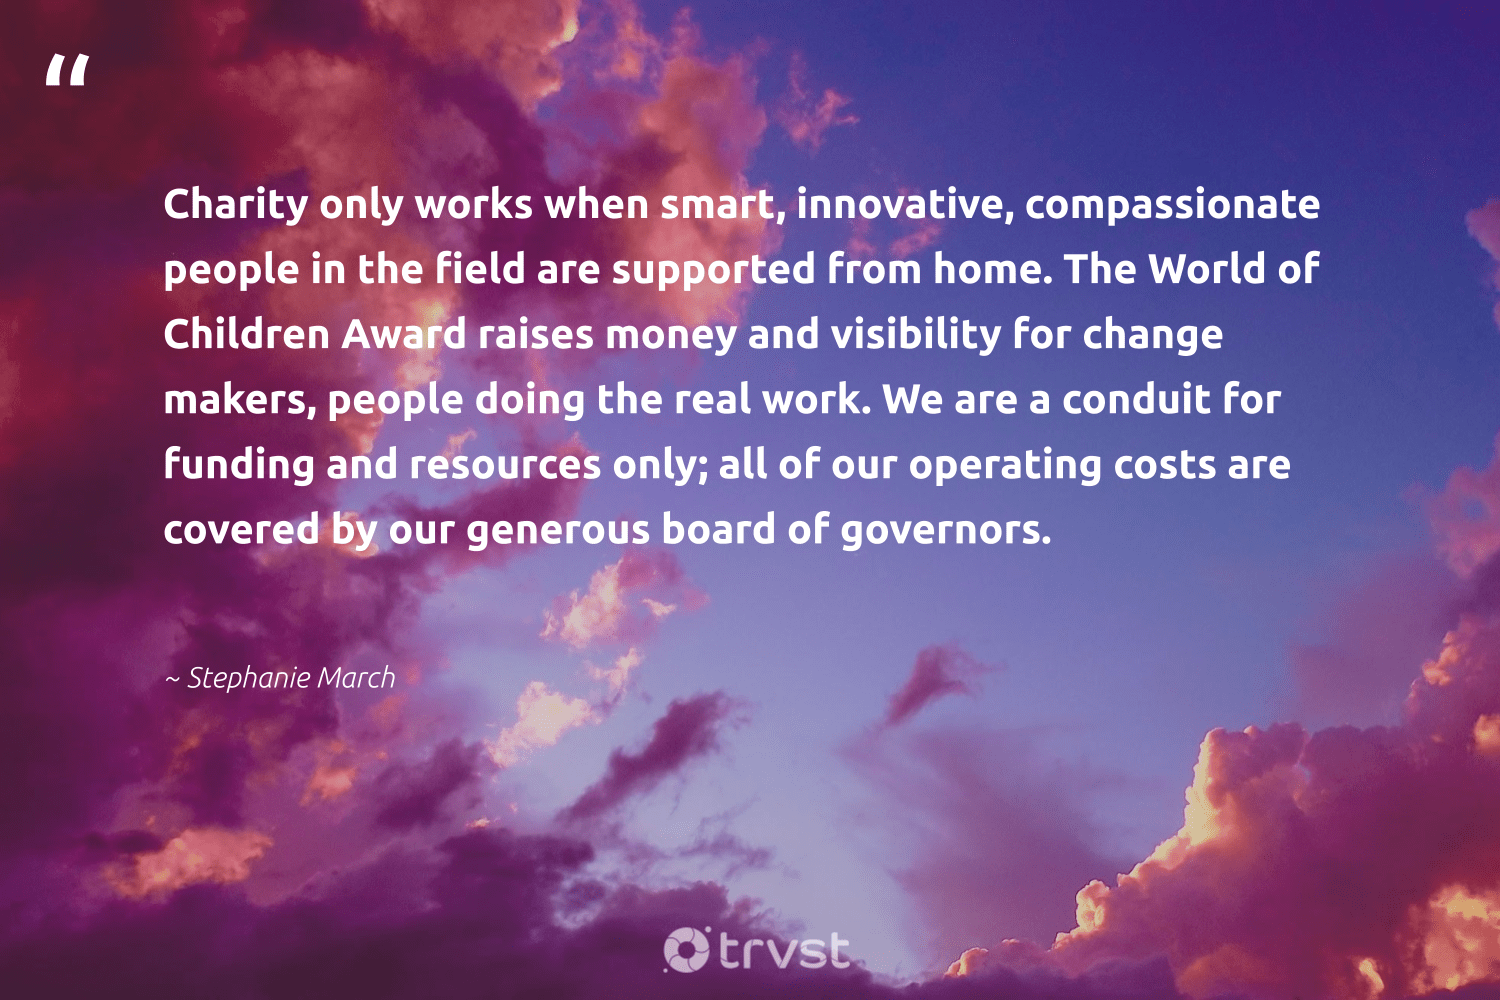 """""""Charity only works when smart, innovative, compassionate people in the field are supported from home. The World of Children Award raises money and visibility for change makers, people doing the real work. We are a conduit for funding and resources only; all of our operating costs are covered by our generous board of governors.""""  - Stephanie March #trvst #quotes #children #changemakers #activist #betterplanet #weareallone #dogood #resist #giveback #equalopportunity #thinkgreen"""